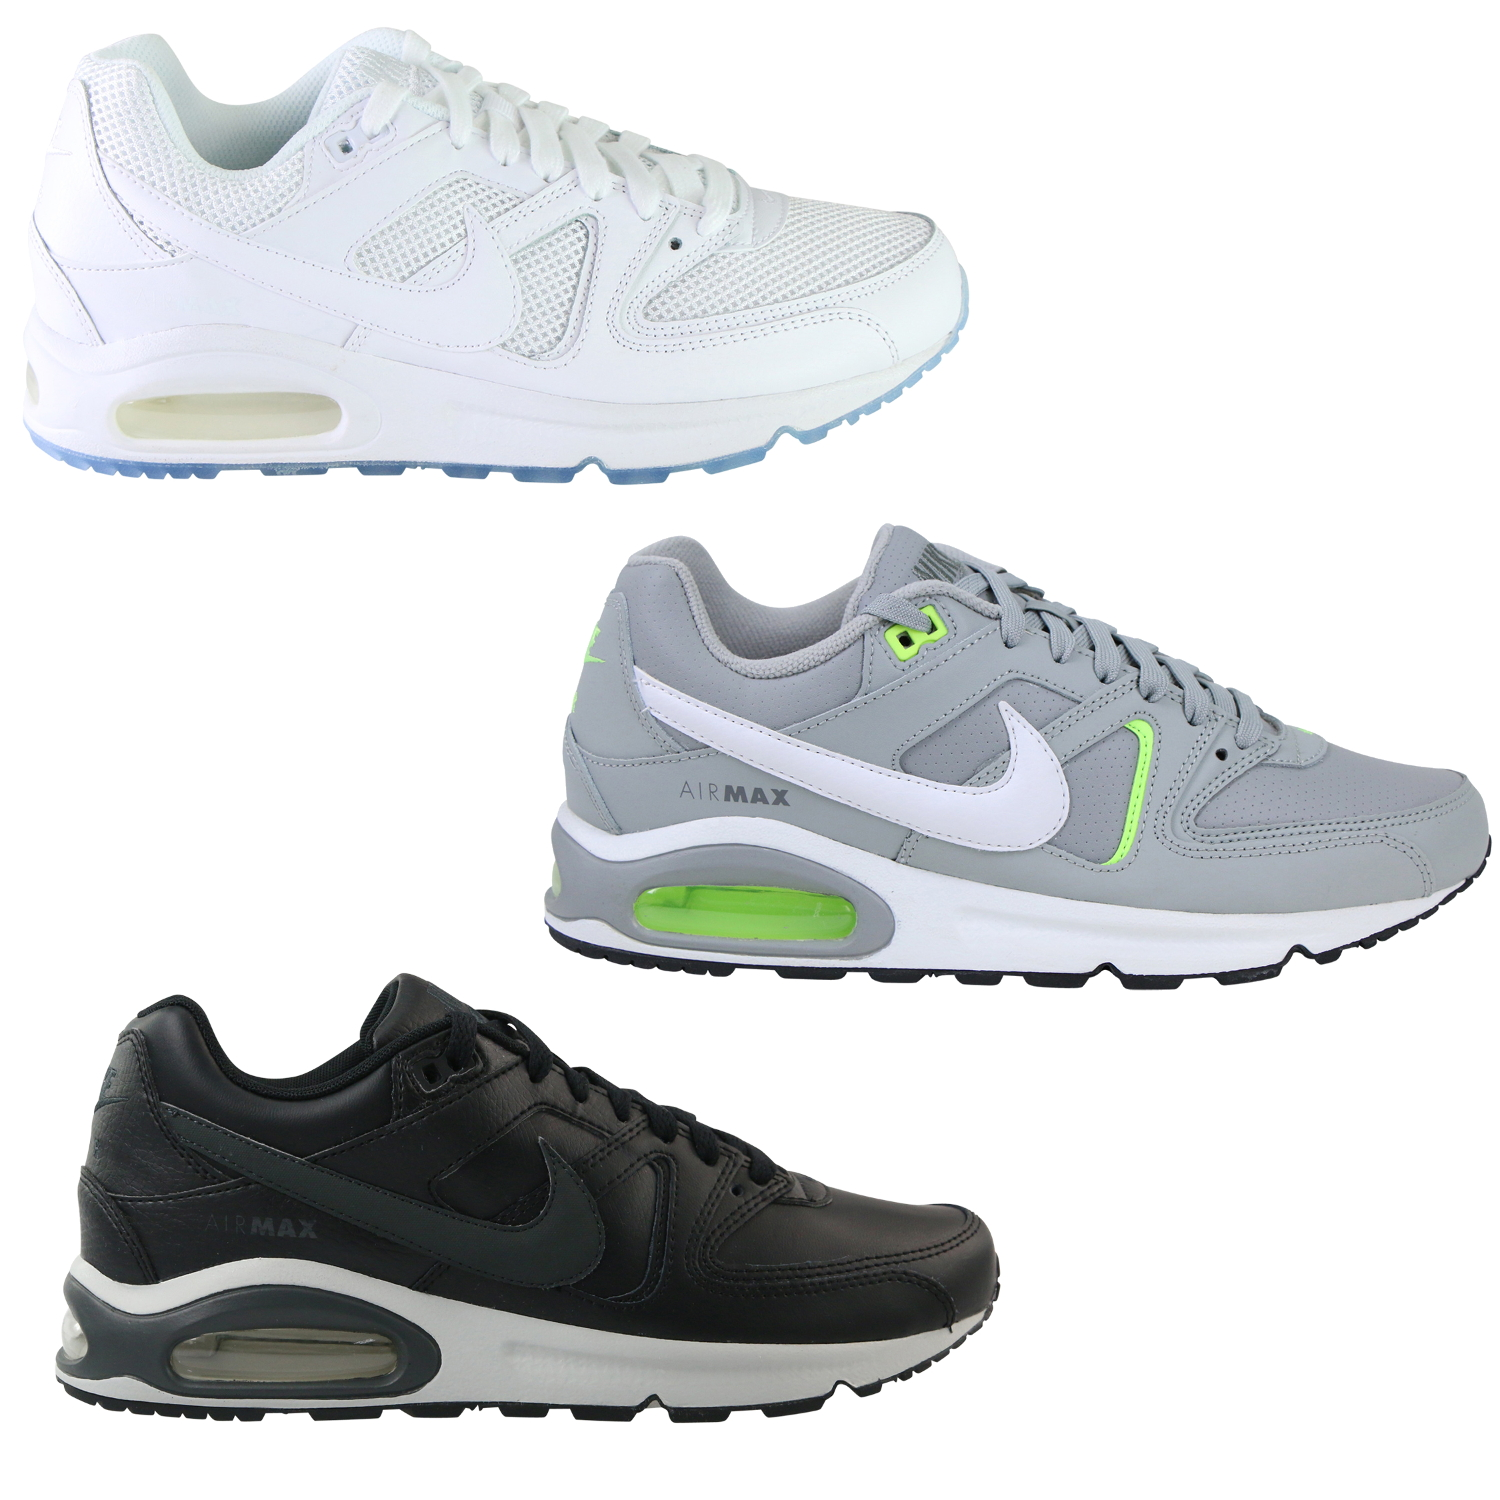 Details about Nike Air Max Command Shoes Casual Shoes Sneakers Mens show original title